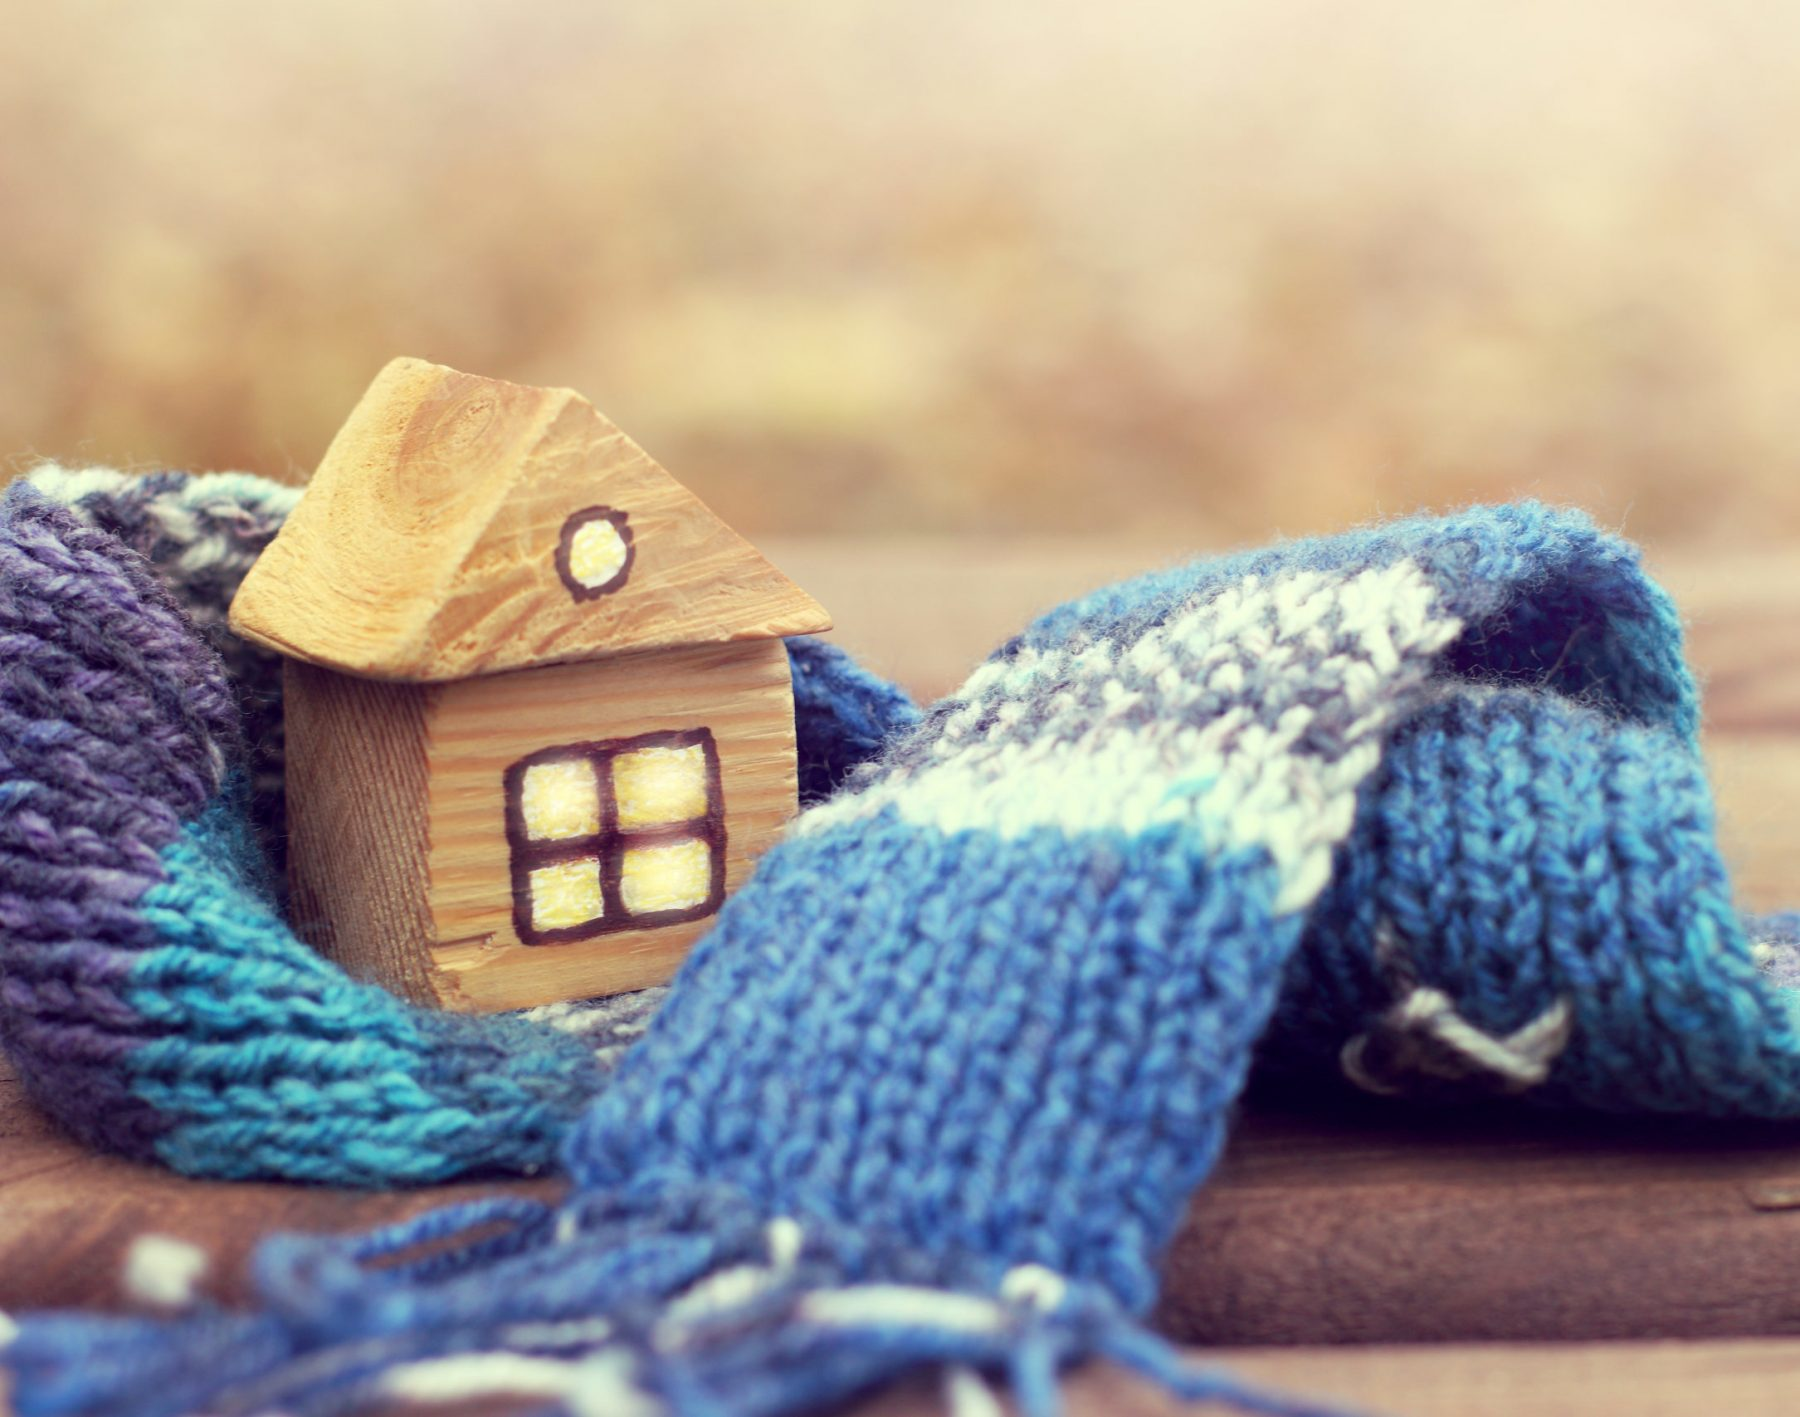 property insurance/ small wooden house in a warm blue scarf